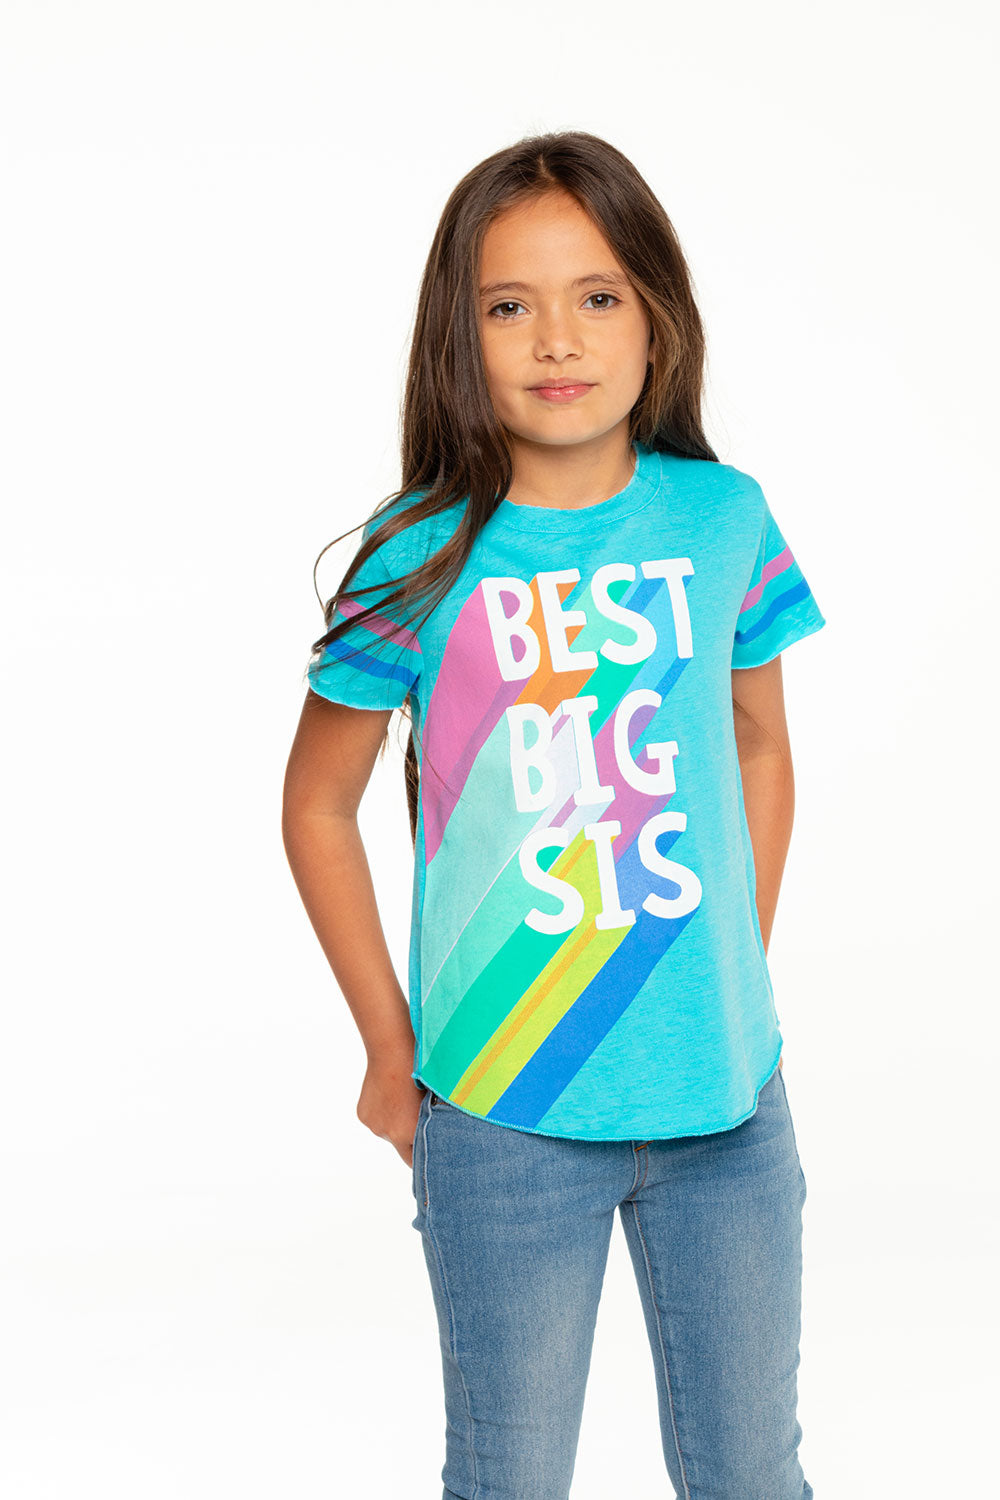 Best Big Sis GIRLS chaserbrand4.myshopify.com